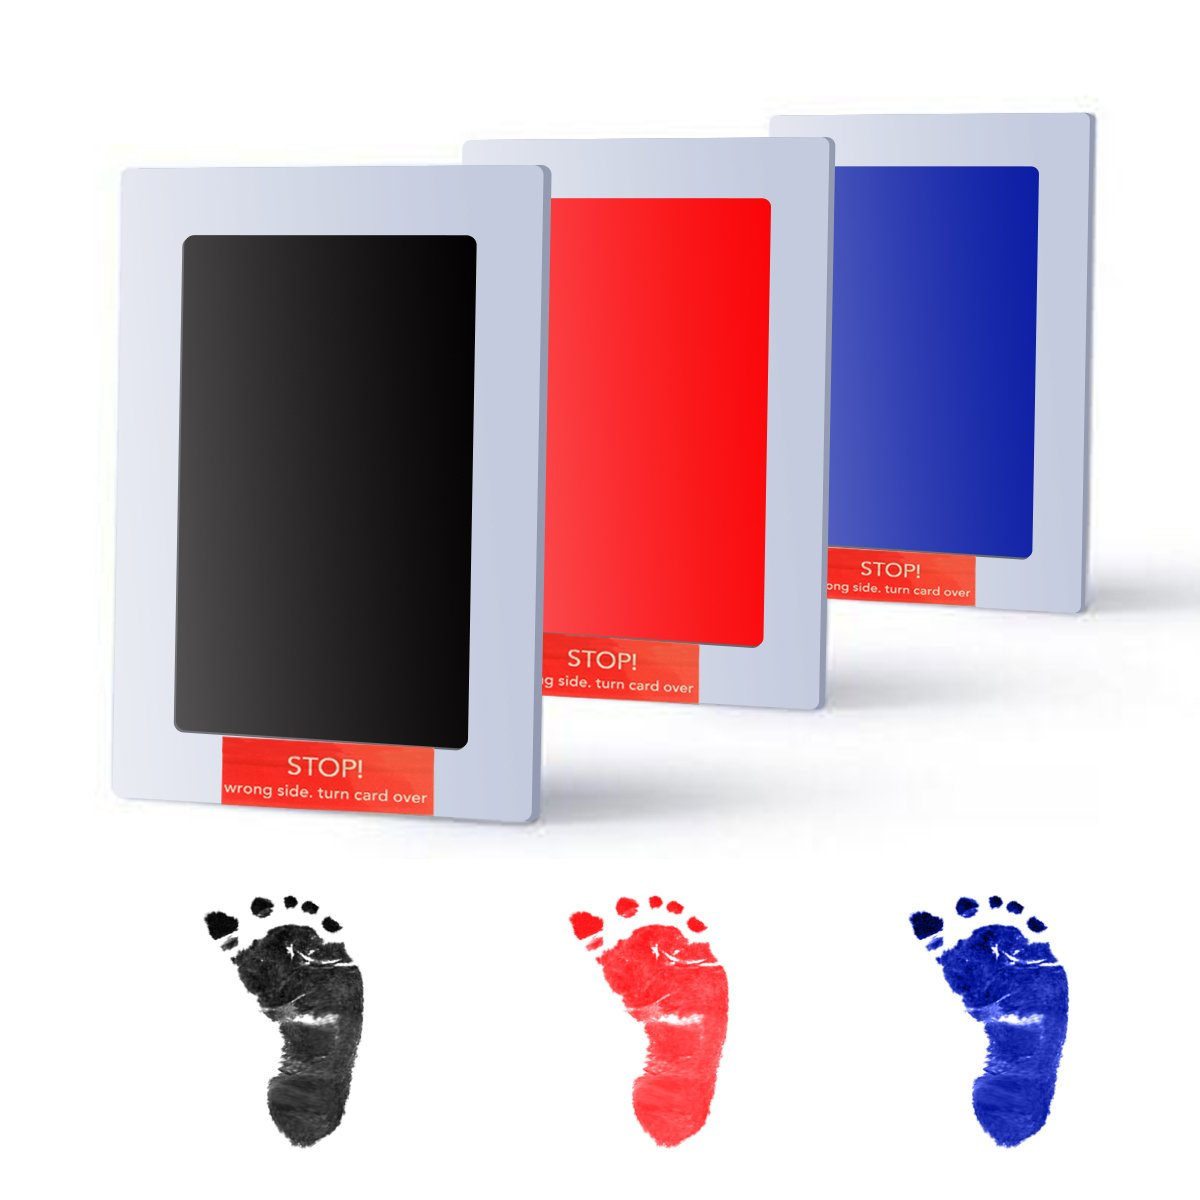 Baby Handprint and Footprint Photo Frame Kit by TopSuccess Without Ink-Touch,Safe and Non-Toxic Ink Print Kit for Baby Babyprints Inkpad Best for Newborn Baby Gifts GM10 (Black) by TopSuccess (Image #6)